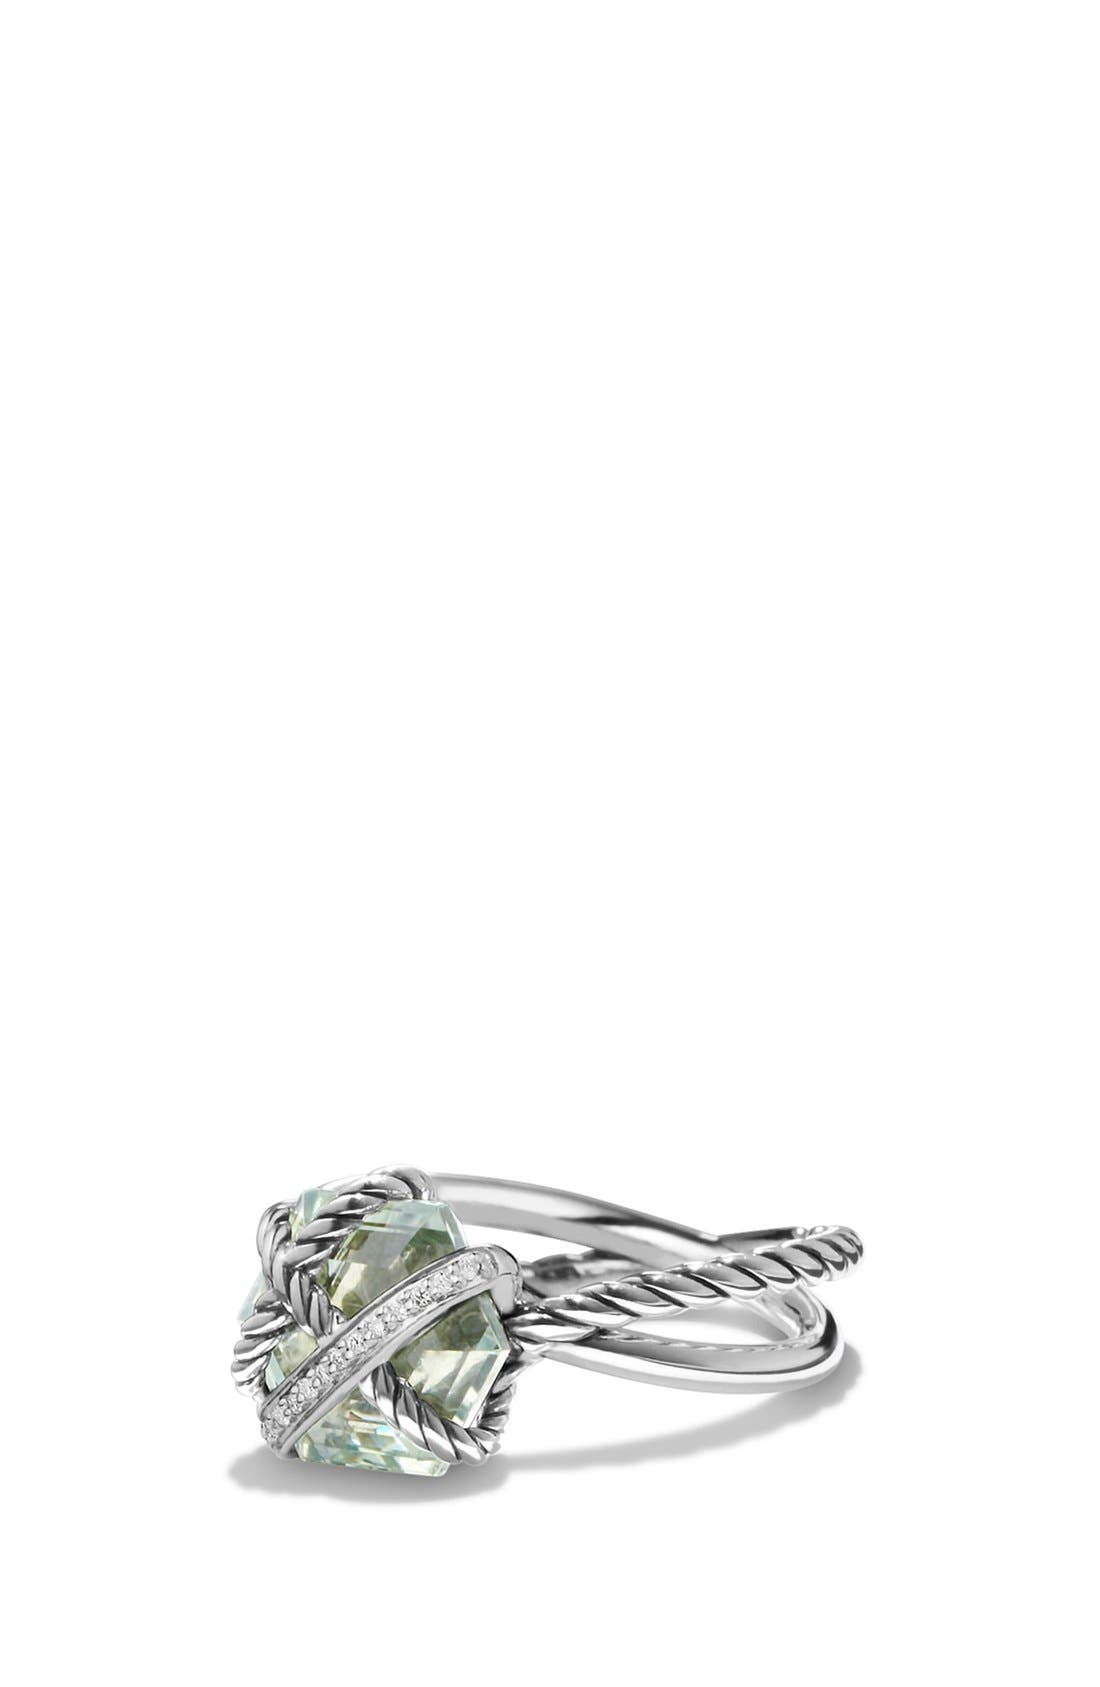 Alternate Image 1 Selected - David Yurman Cable Wrap Ring with Semiprecious Stone and Diamonds